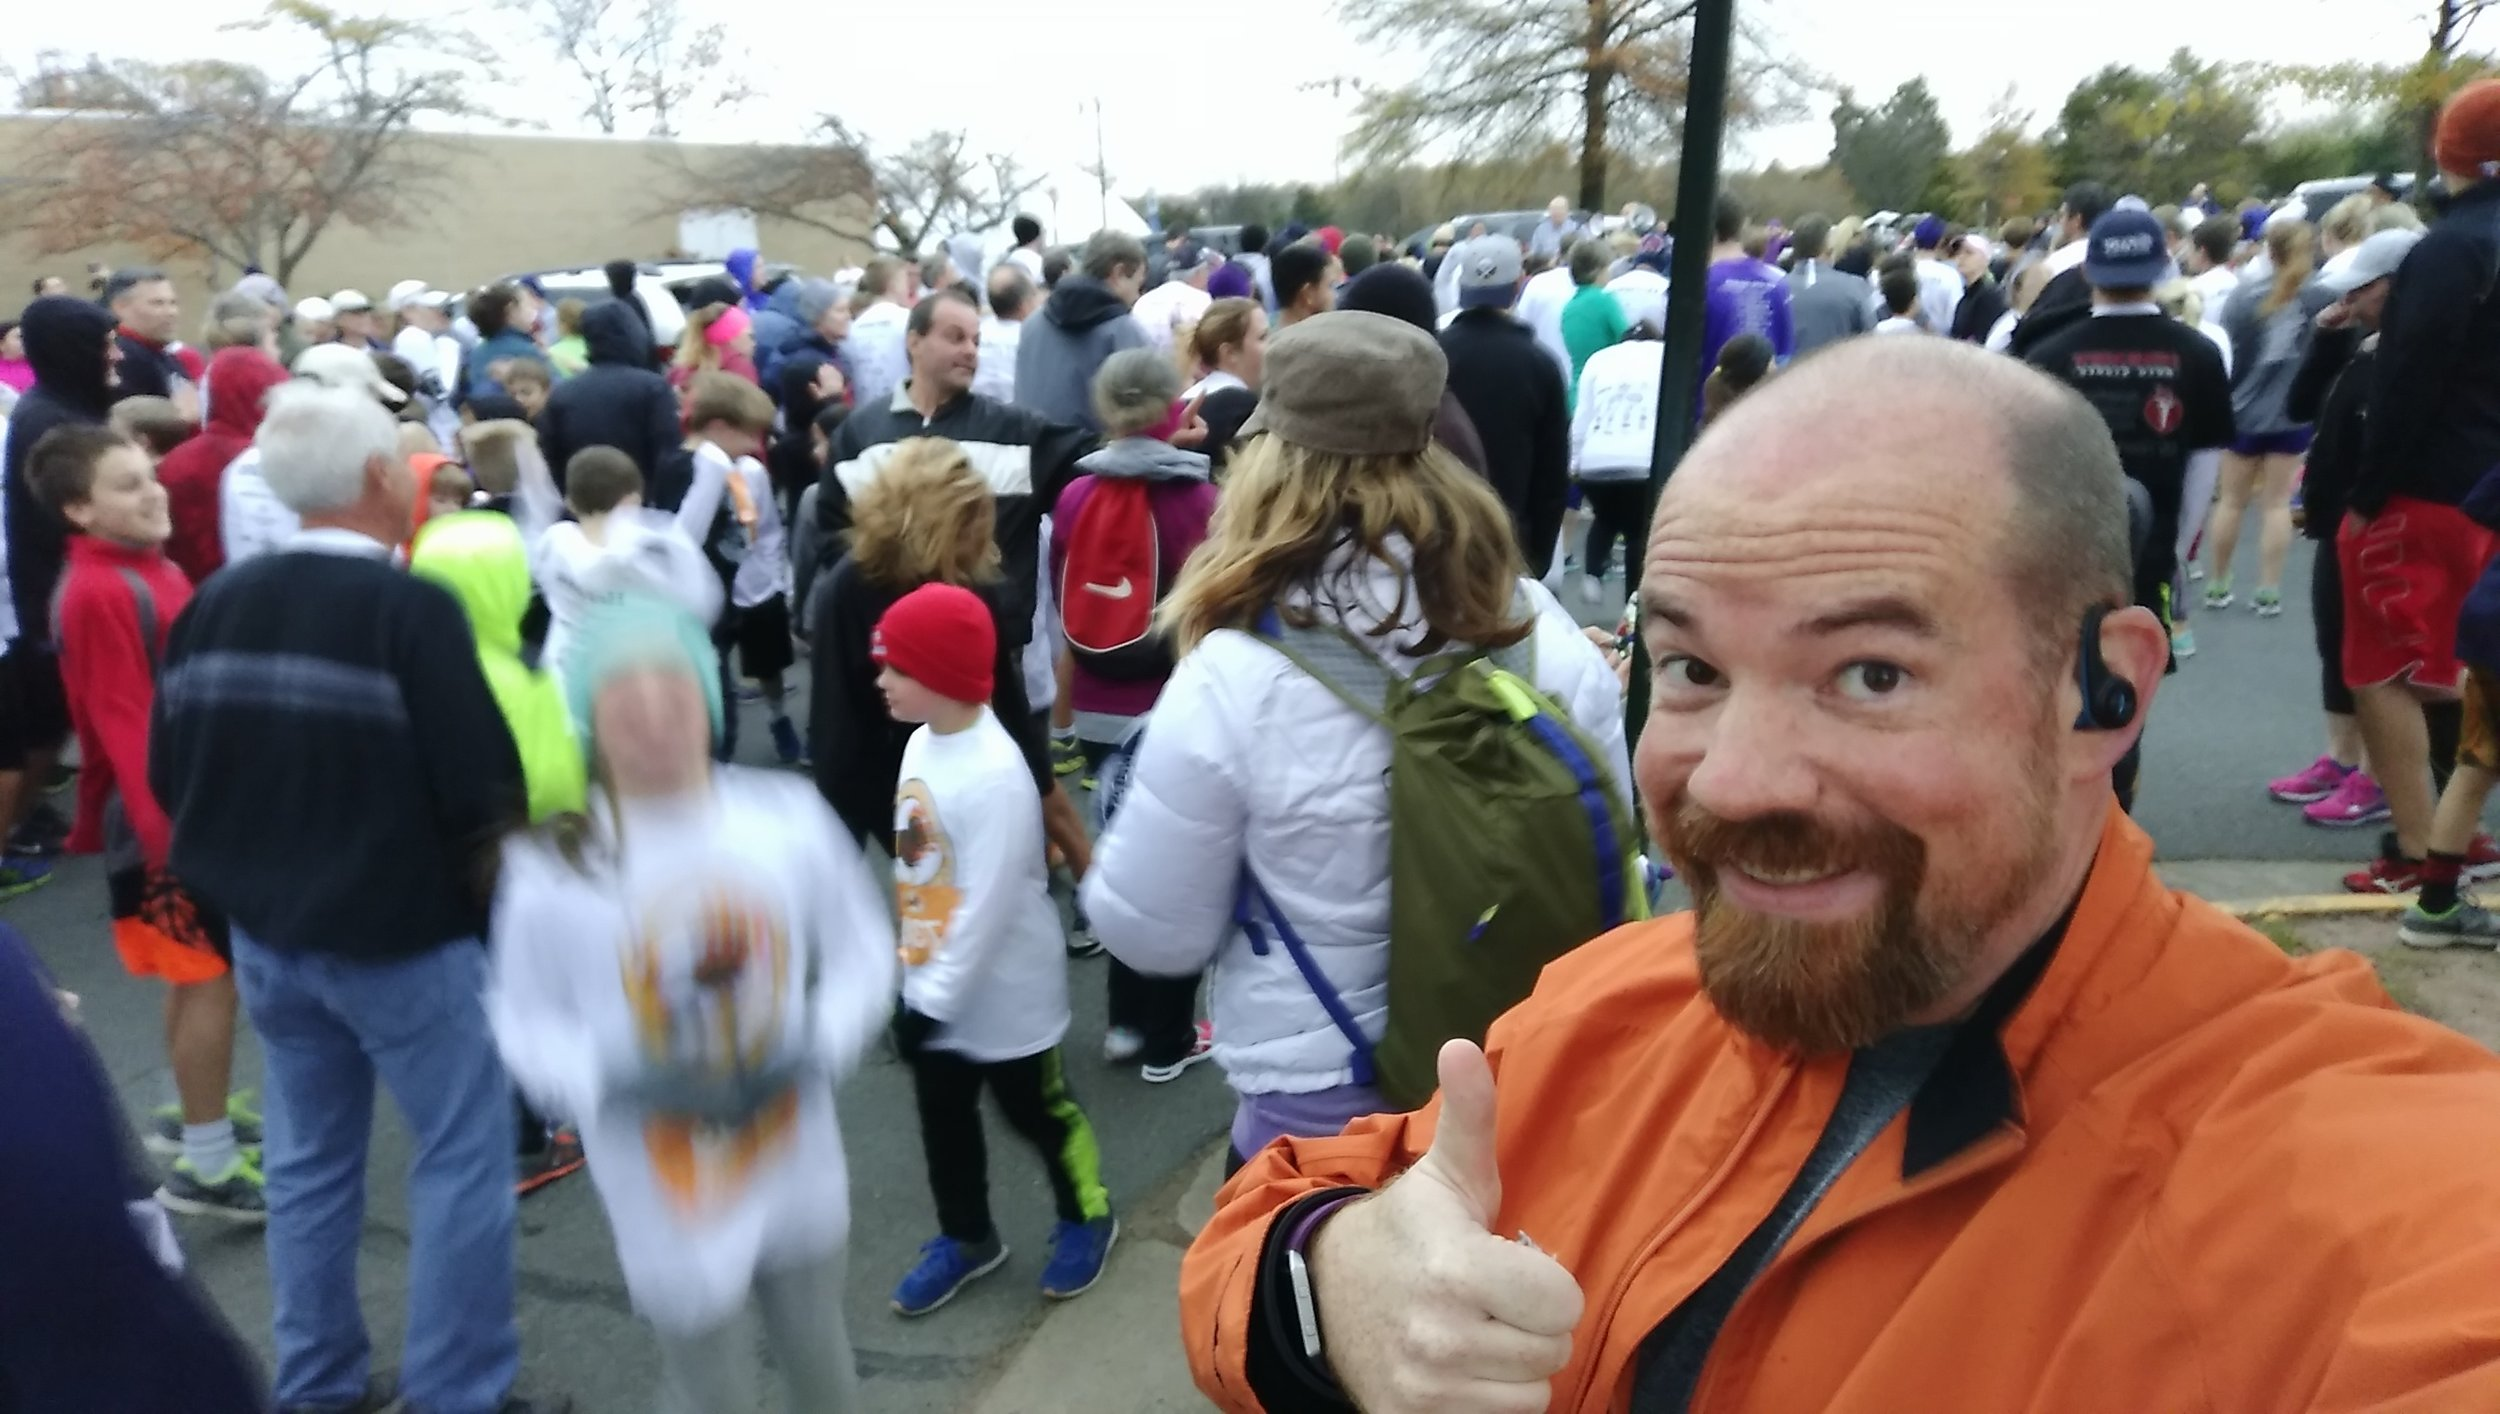 Crowds gather for the Turkey Trot